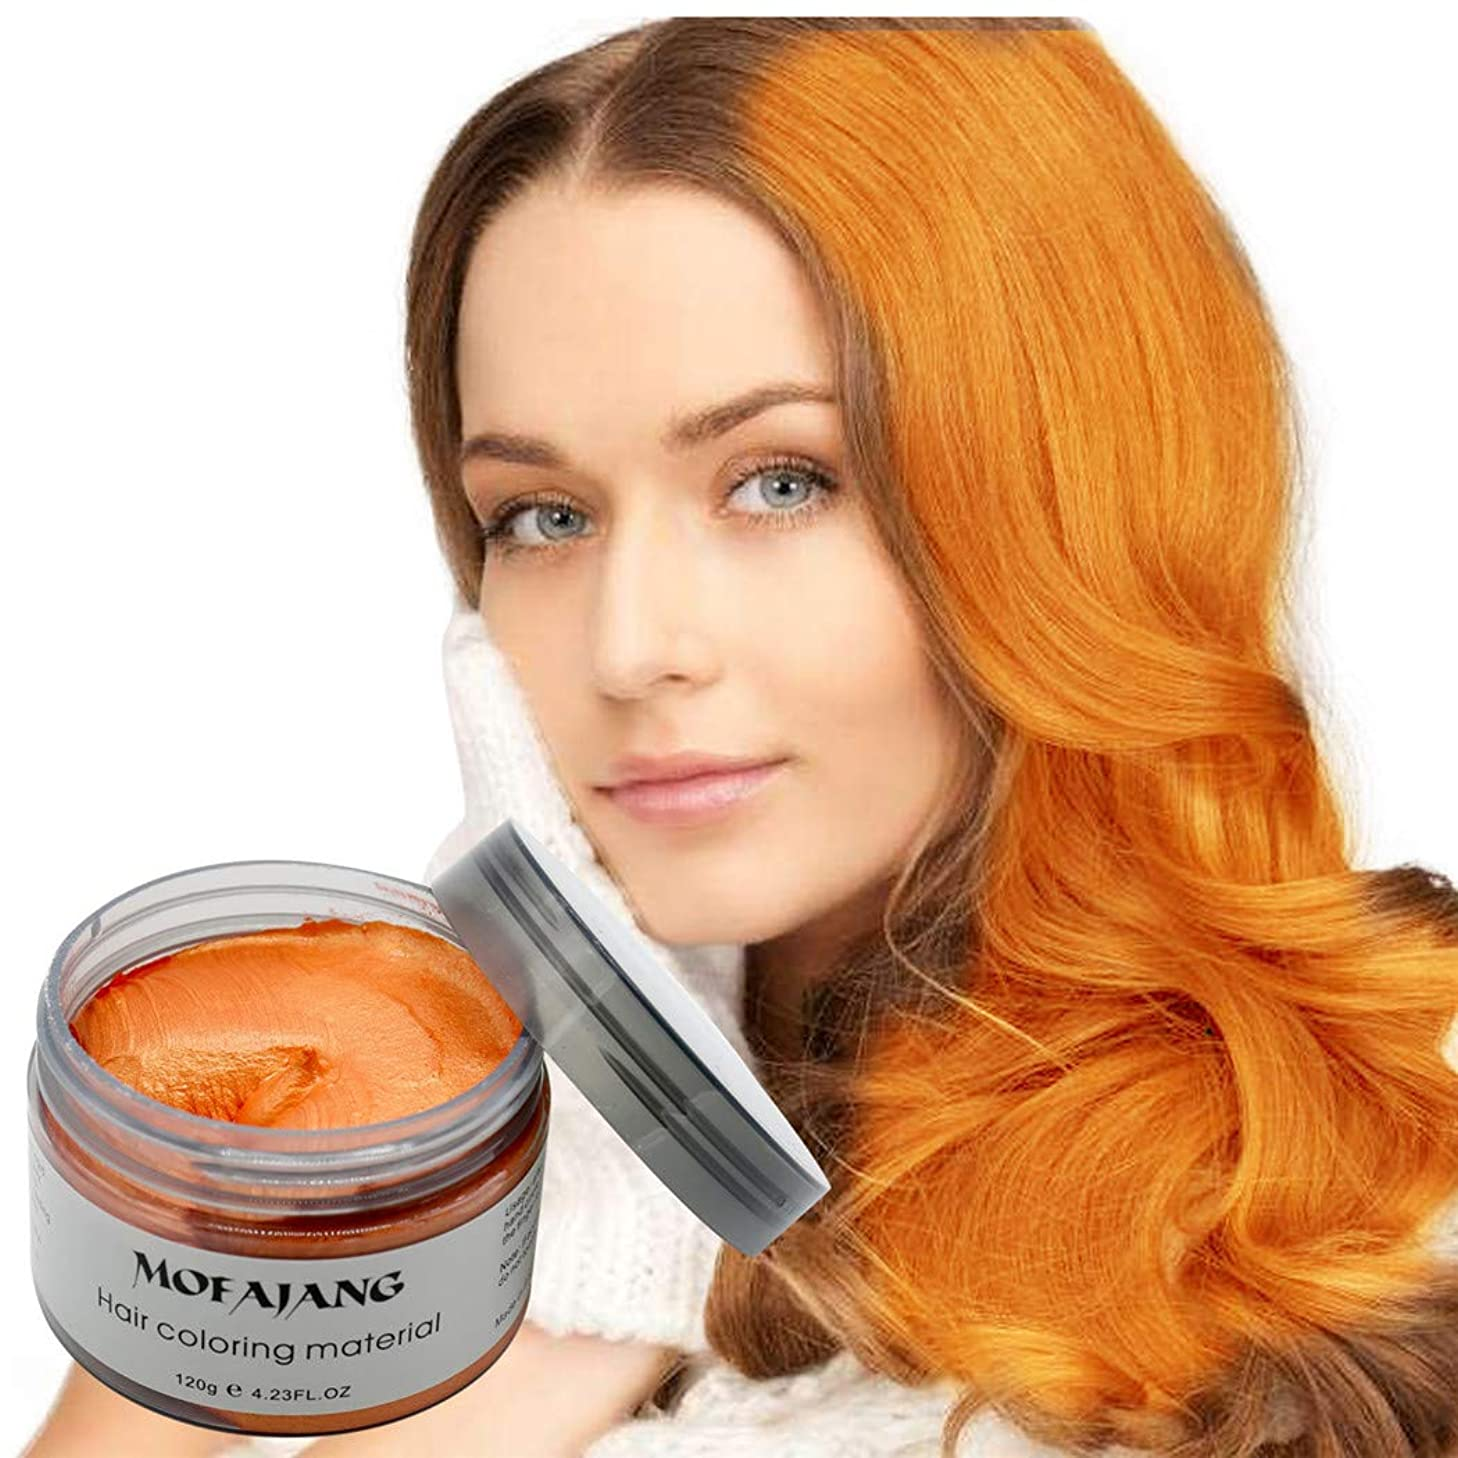 MOFAJANG Hair Color Wax Styling Cream Mud, Temporary Hair Dye Wax, Natural Hairstyle Dye Pomade for Party Cosplay, Halloween, 4.23 OZ, Orange